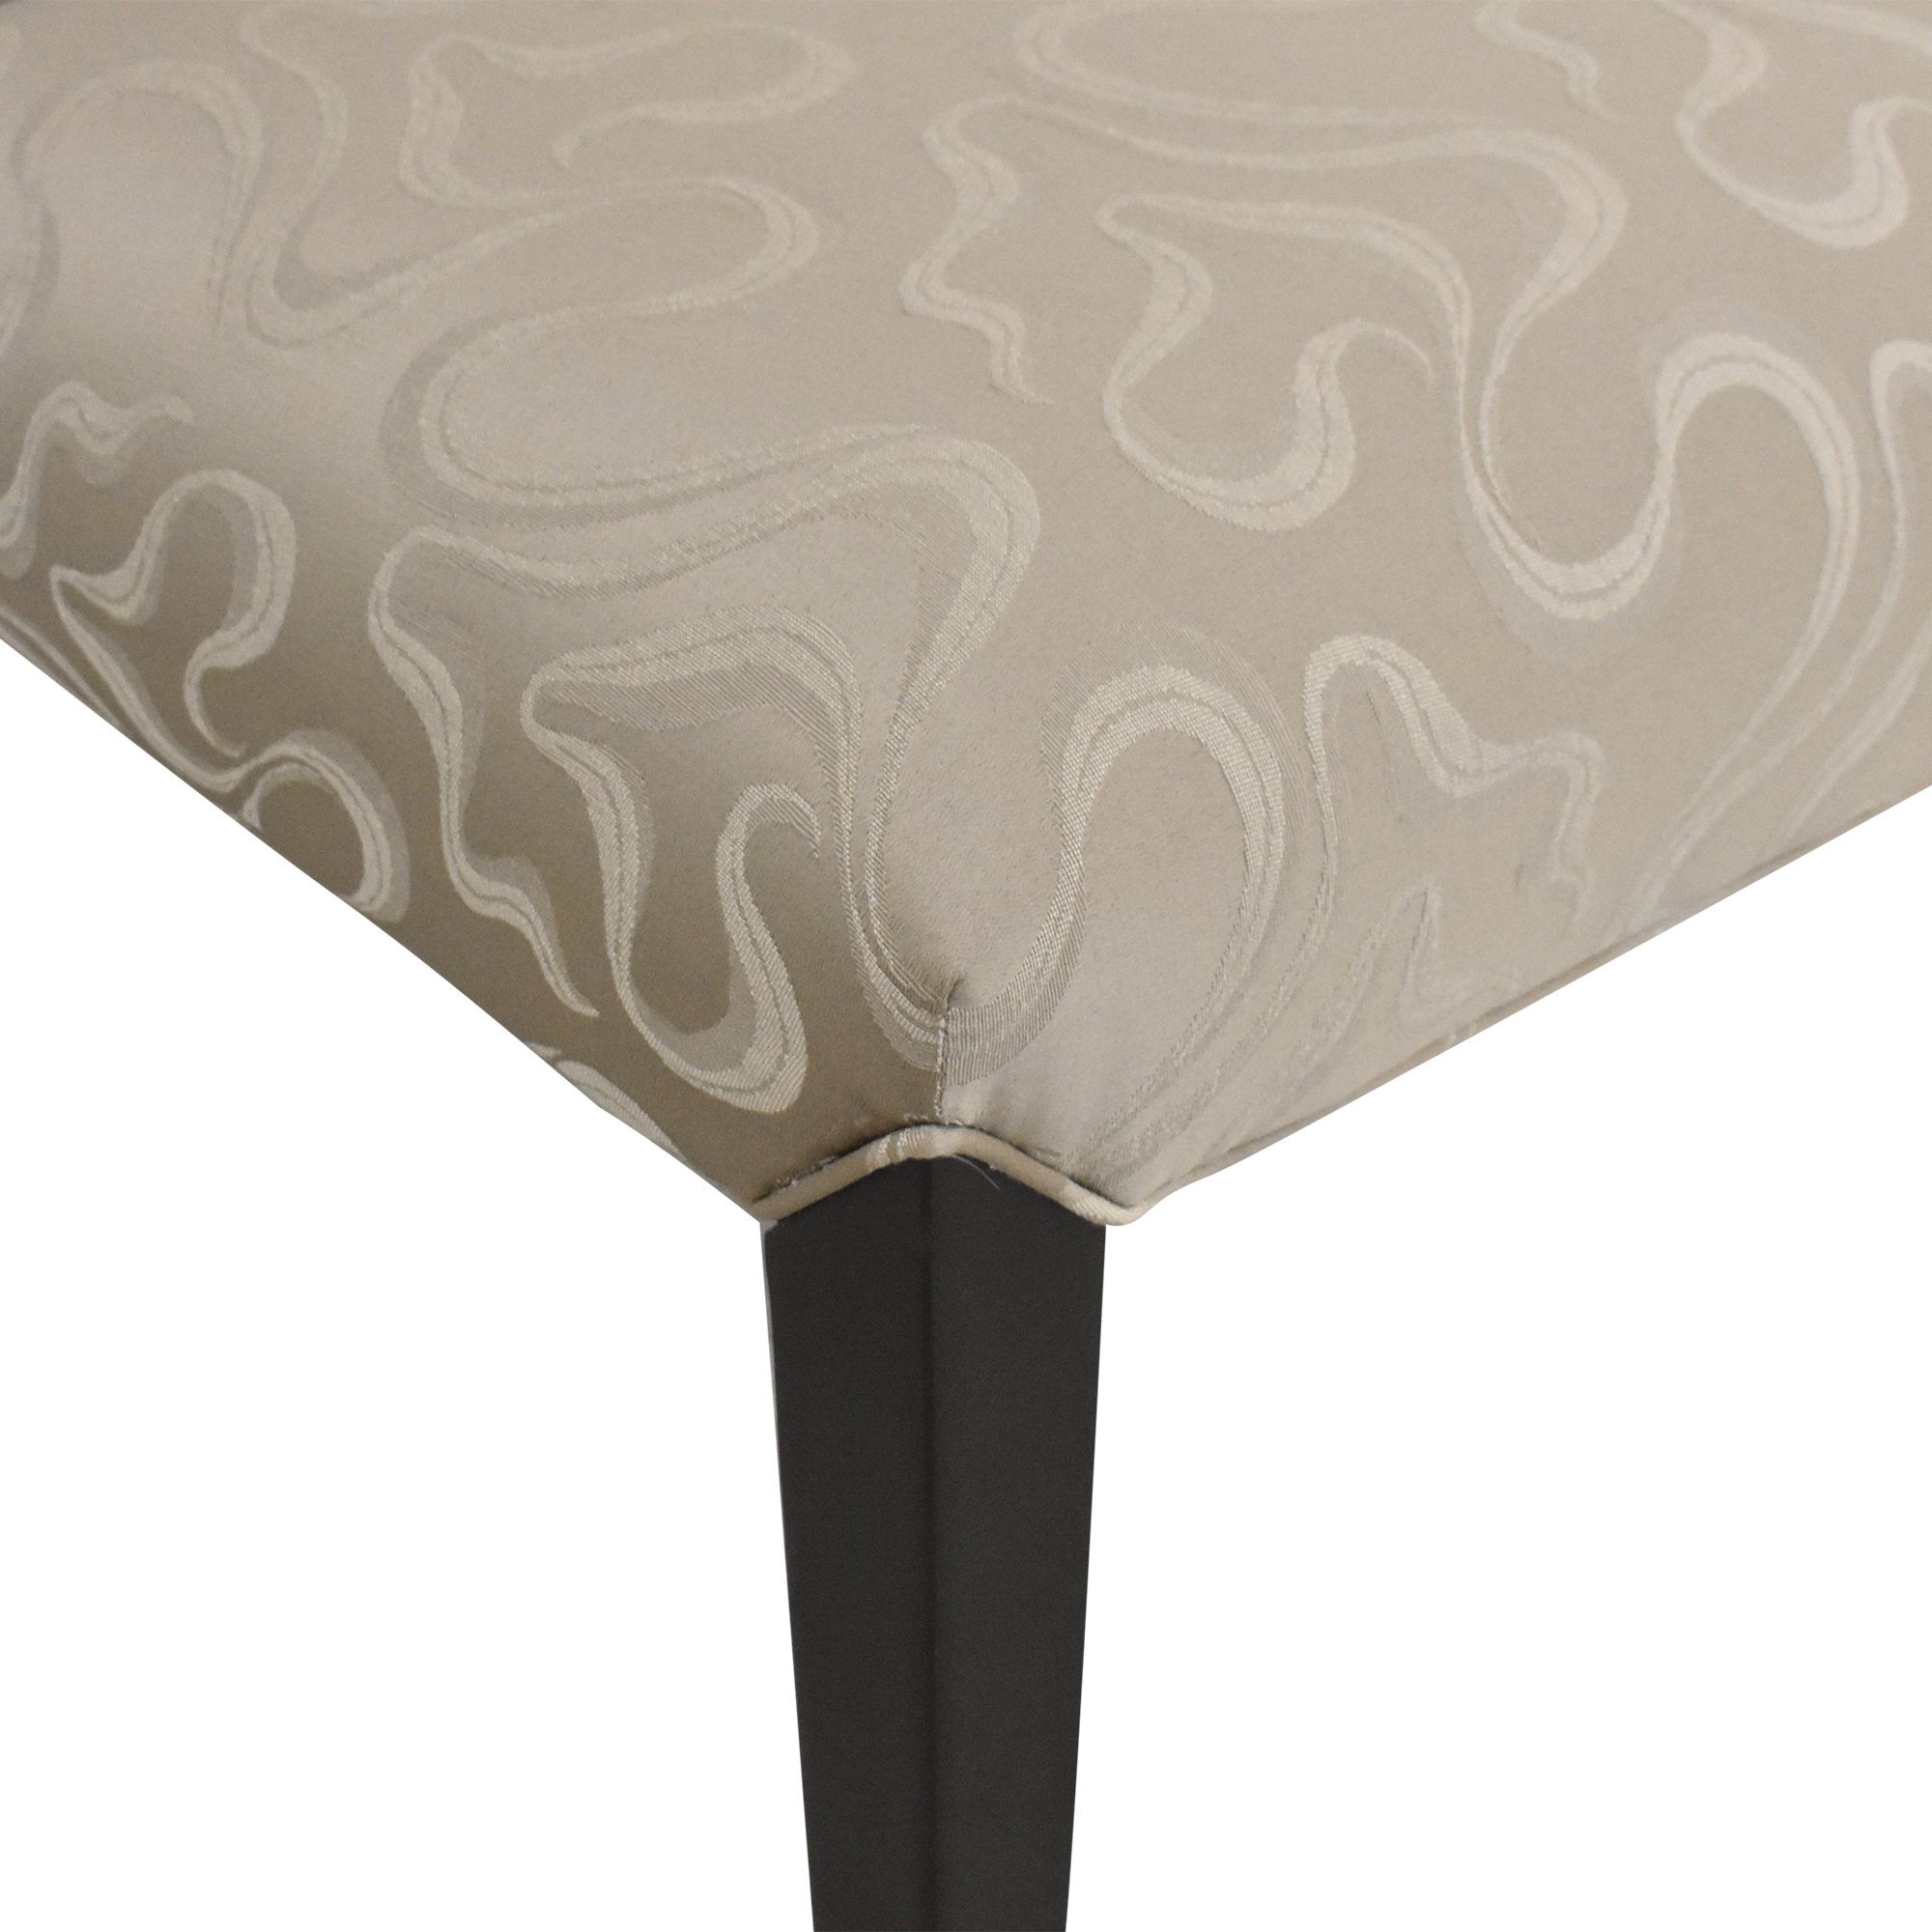 Precedent Furniture Upholstered Dining Chairs Precedent Furniture